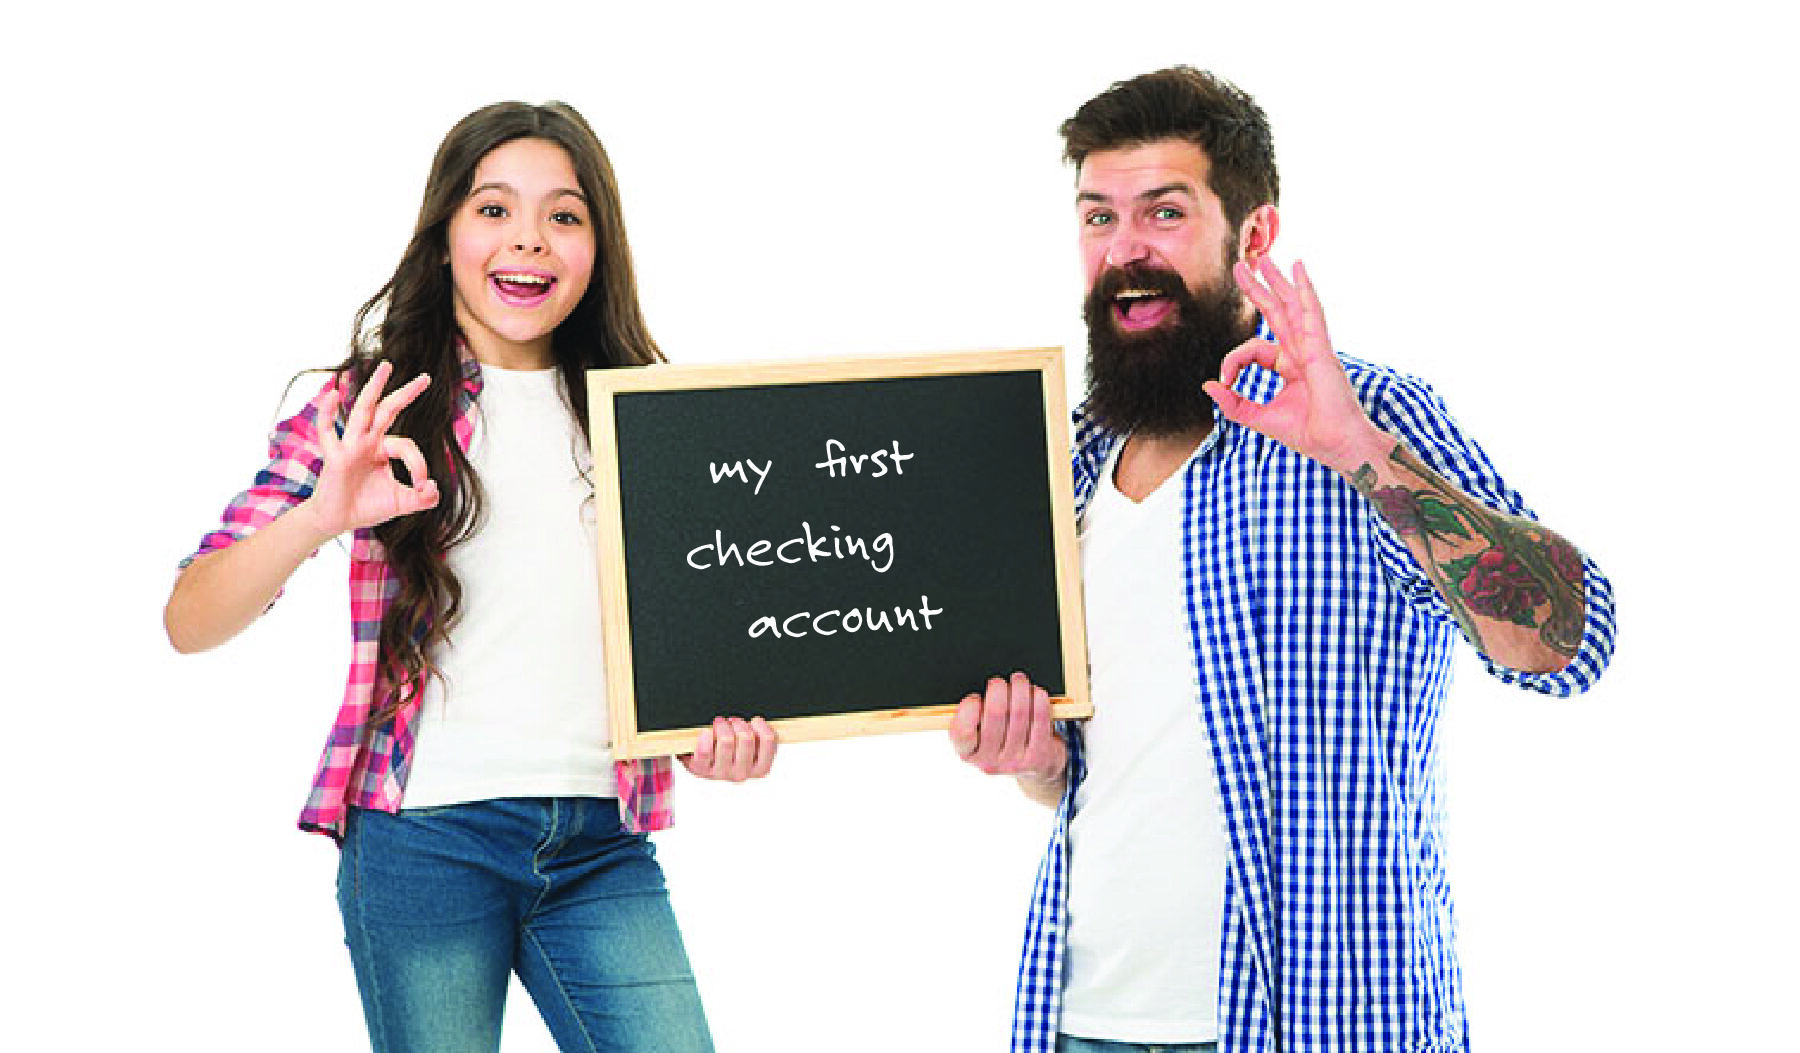 Teach Kids Good Money Habits with their first checking account